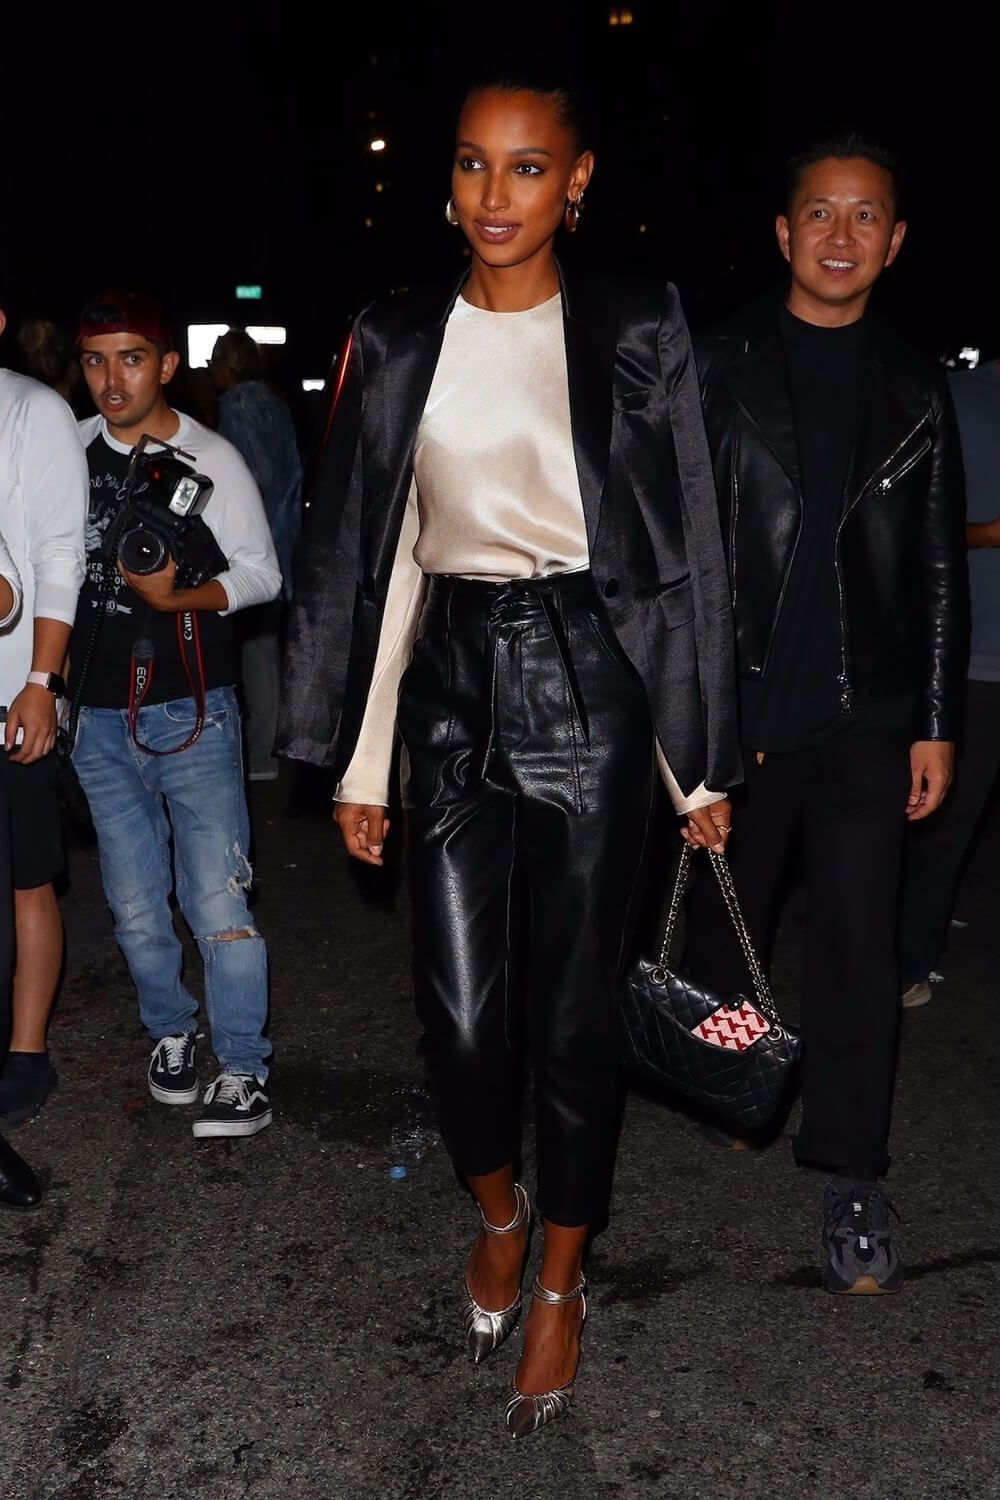 Jasmine Tookes attends Rihanna's afterparty